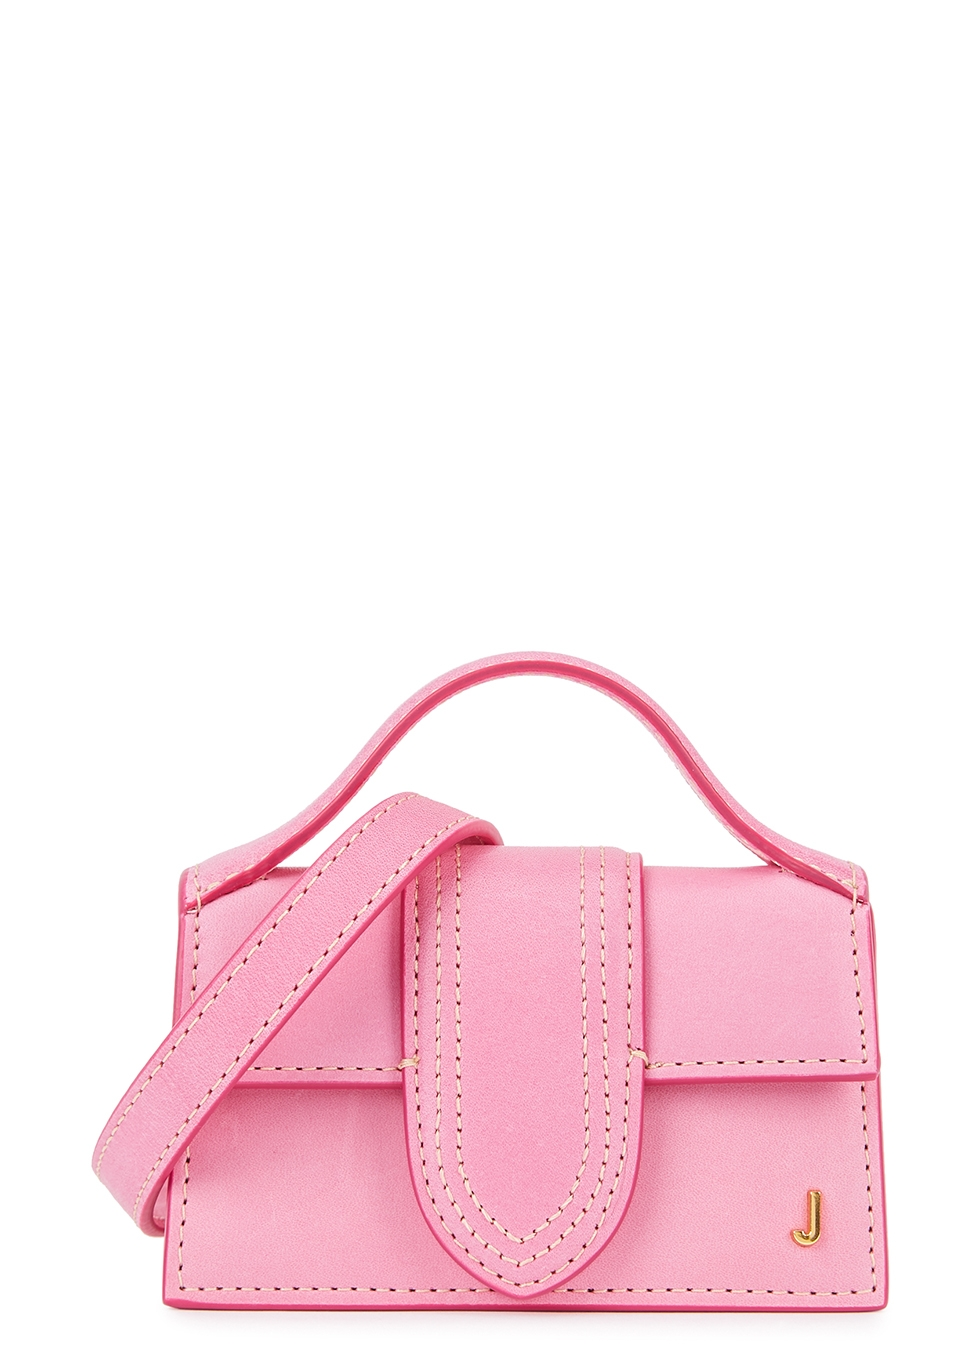 Le Petit Bambino pink leather cross-body bag